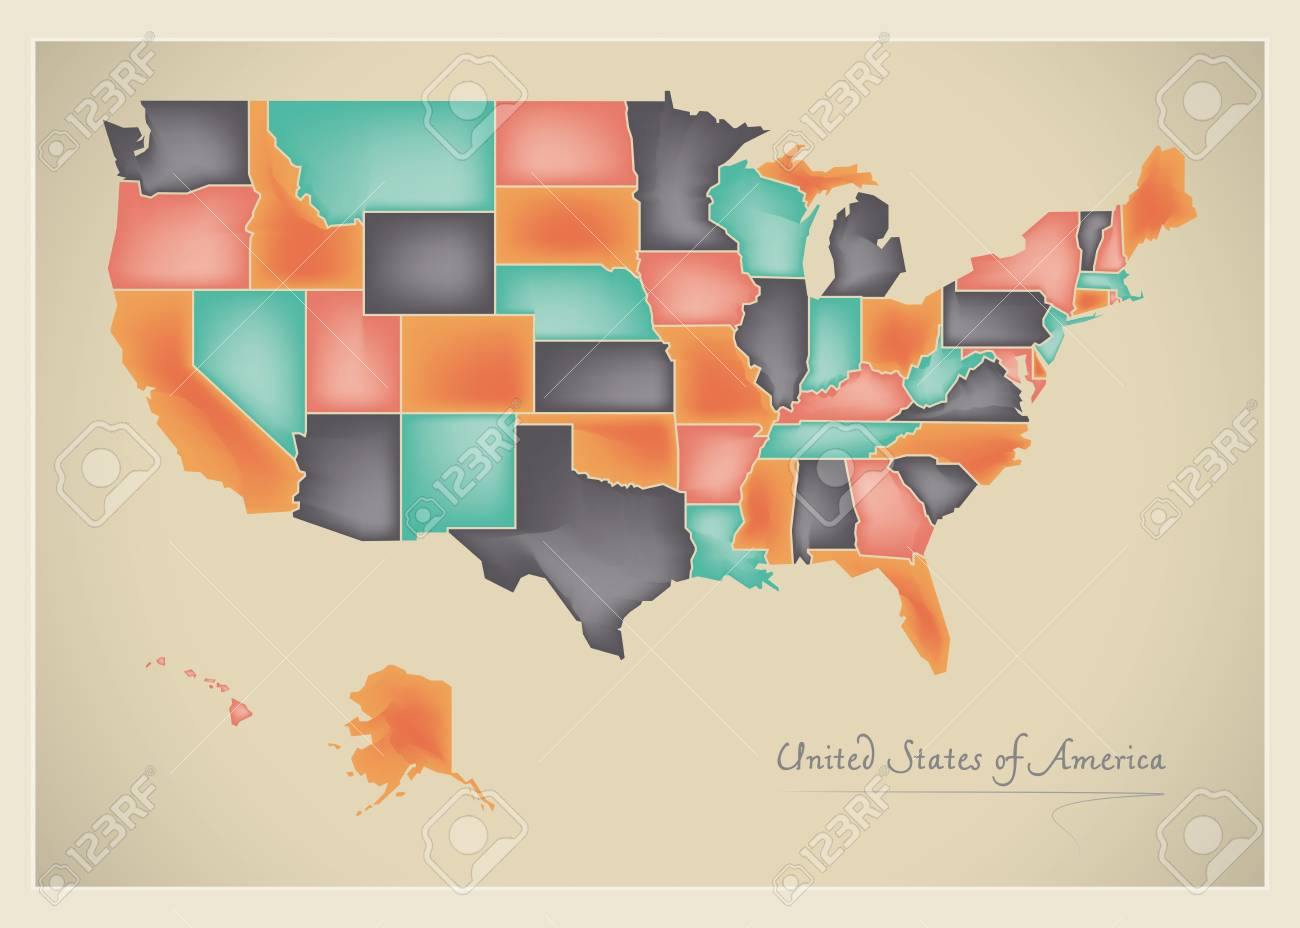 Us Map Artwork.Usa Map Artwork 3d Color Illustration Stock Photo Picture And